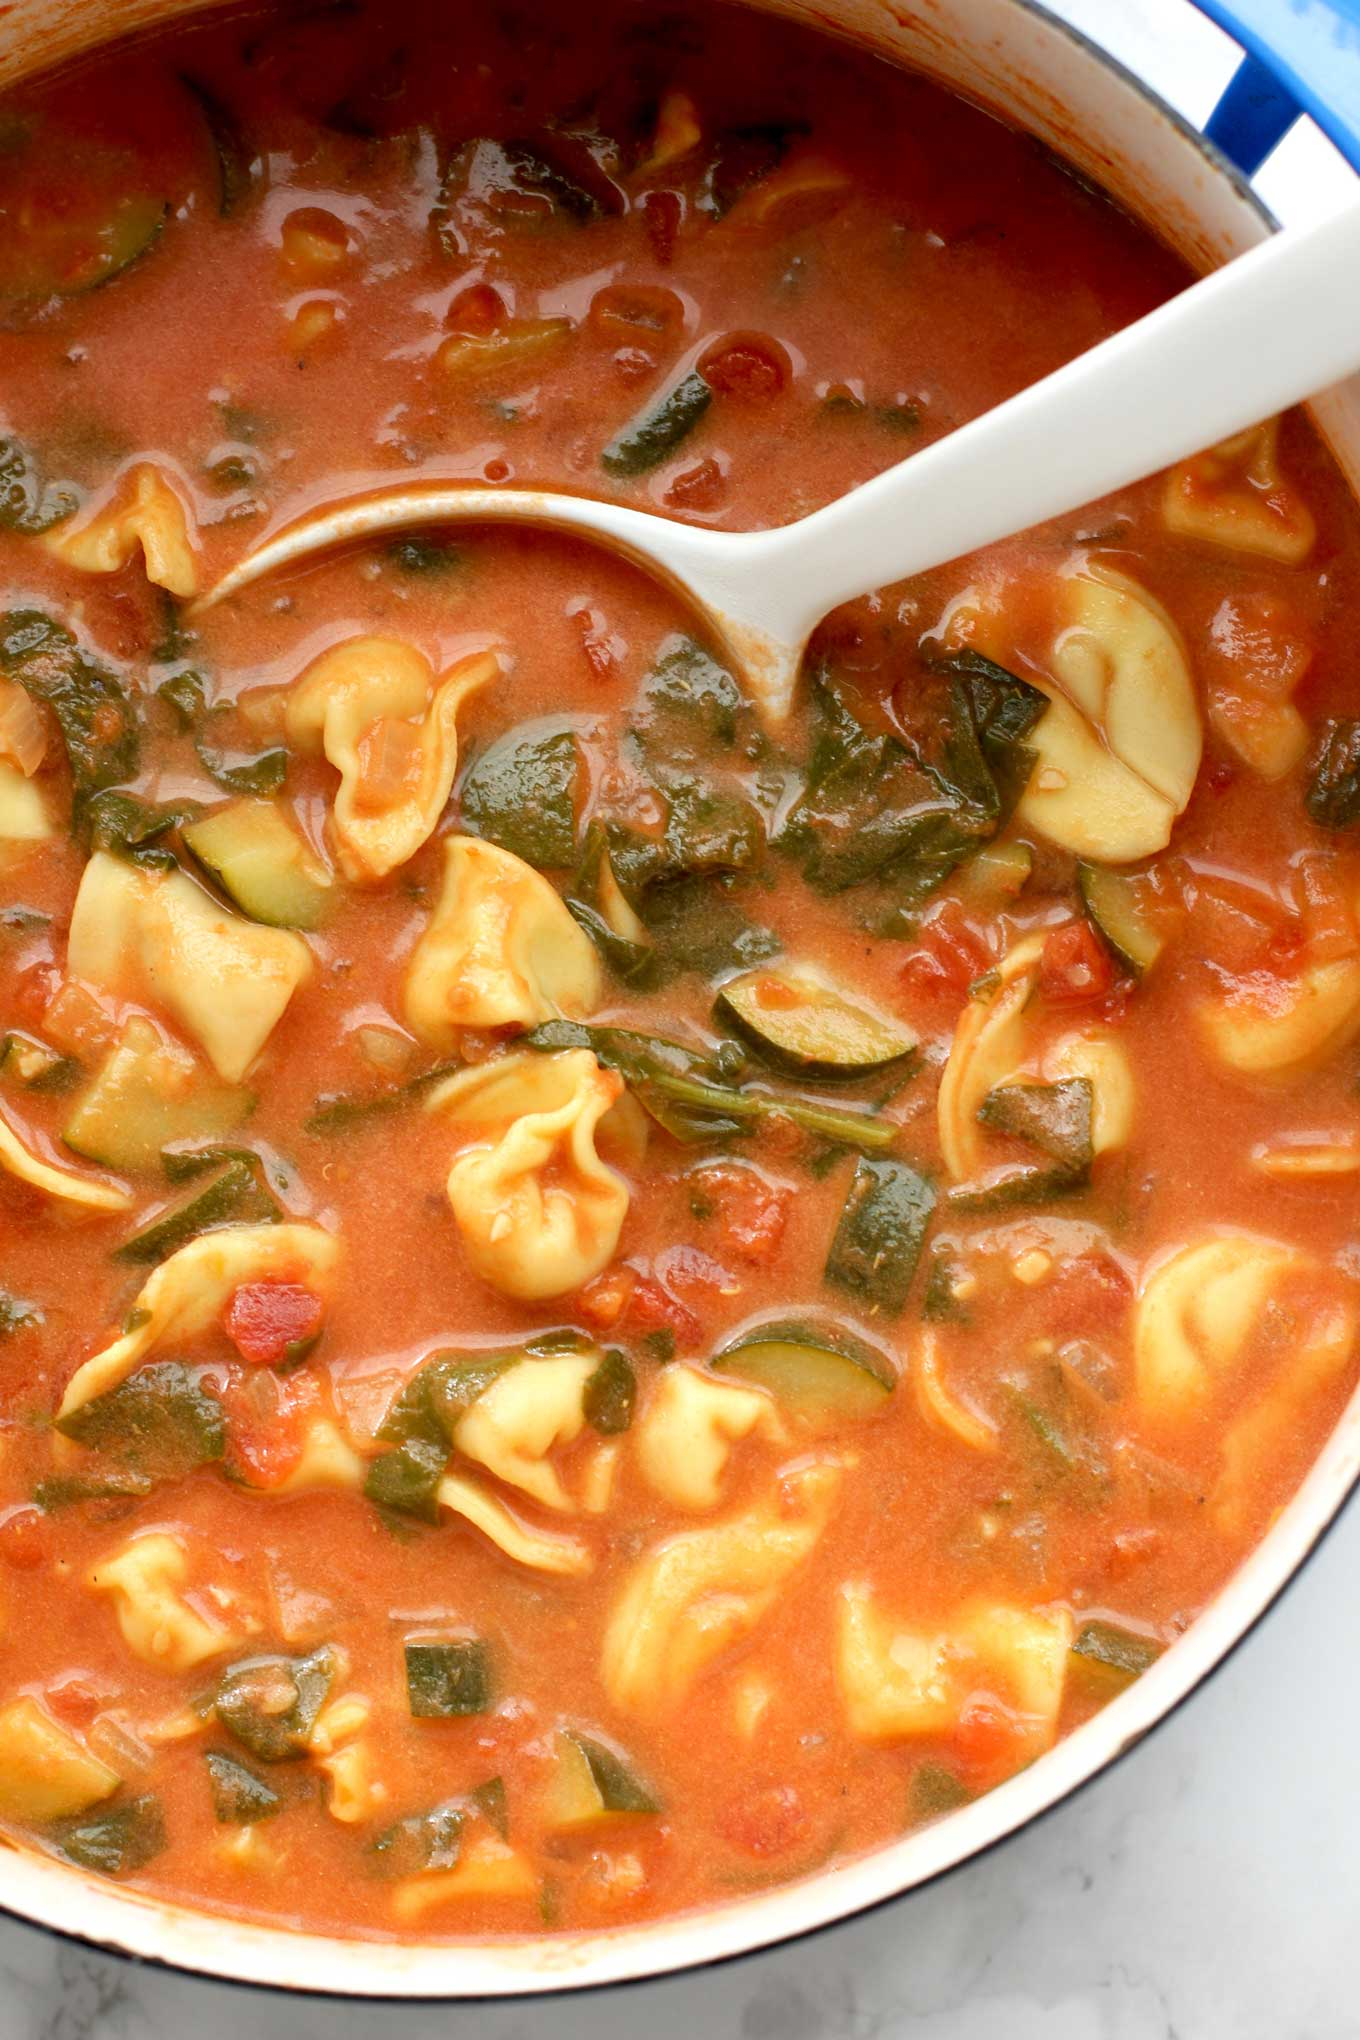 Tomato-Tortellini-Soup-Close-Up